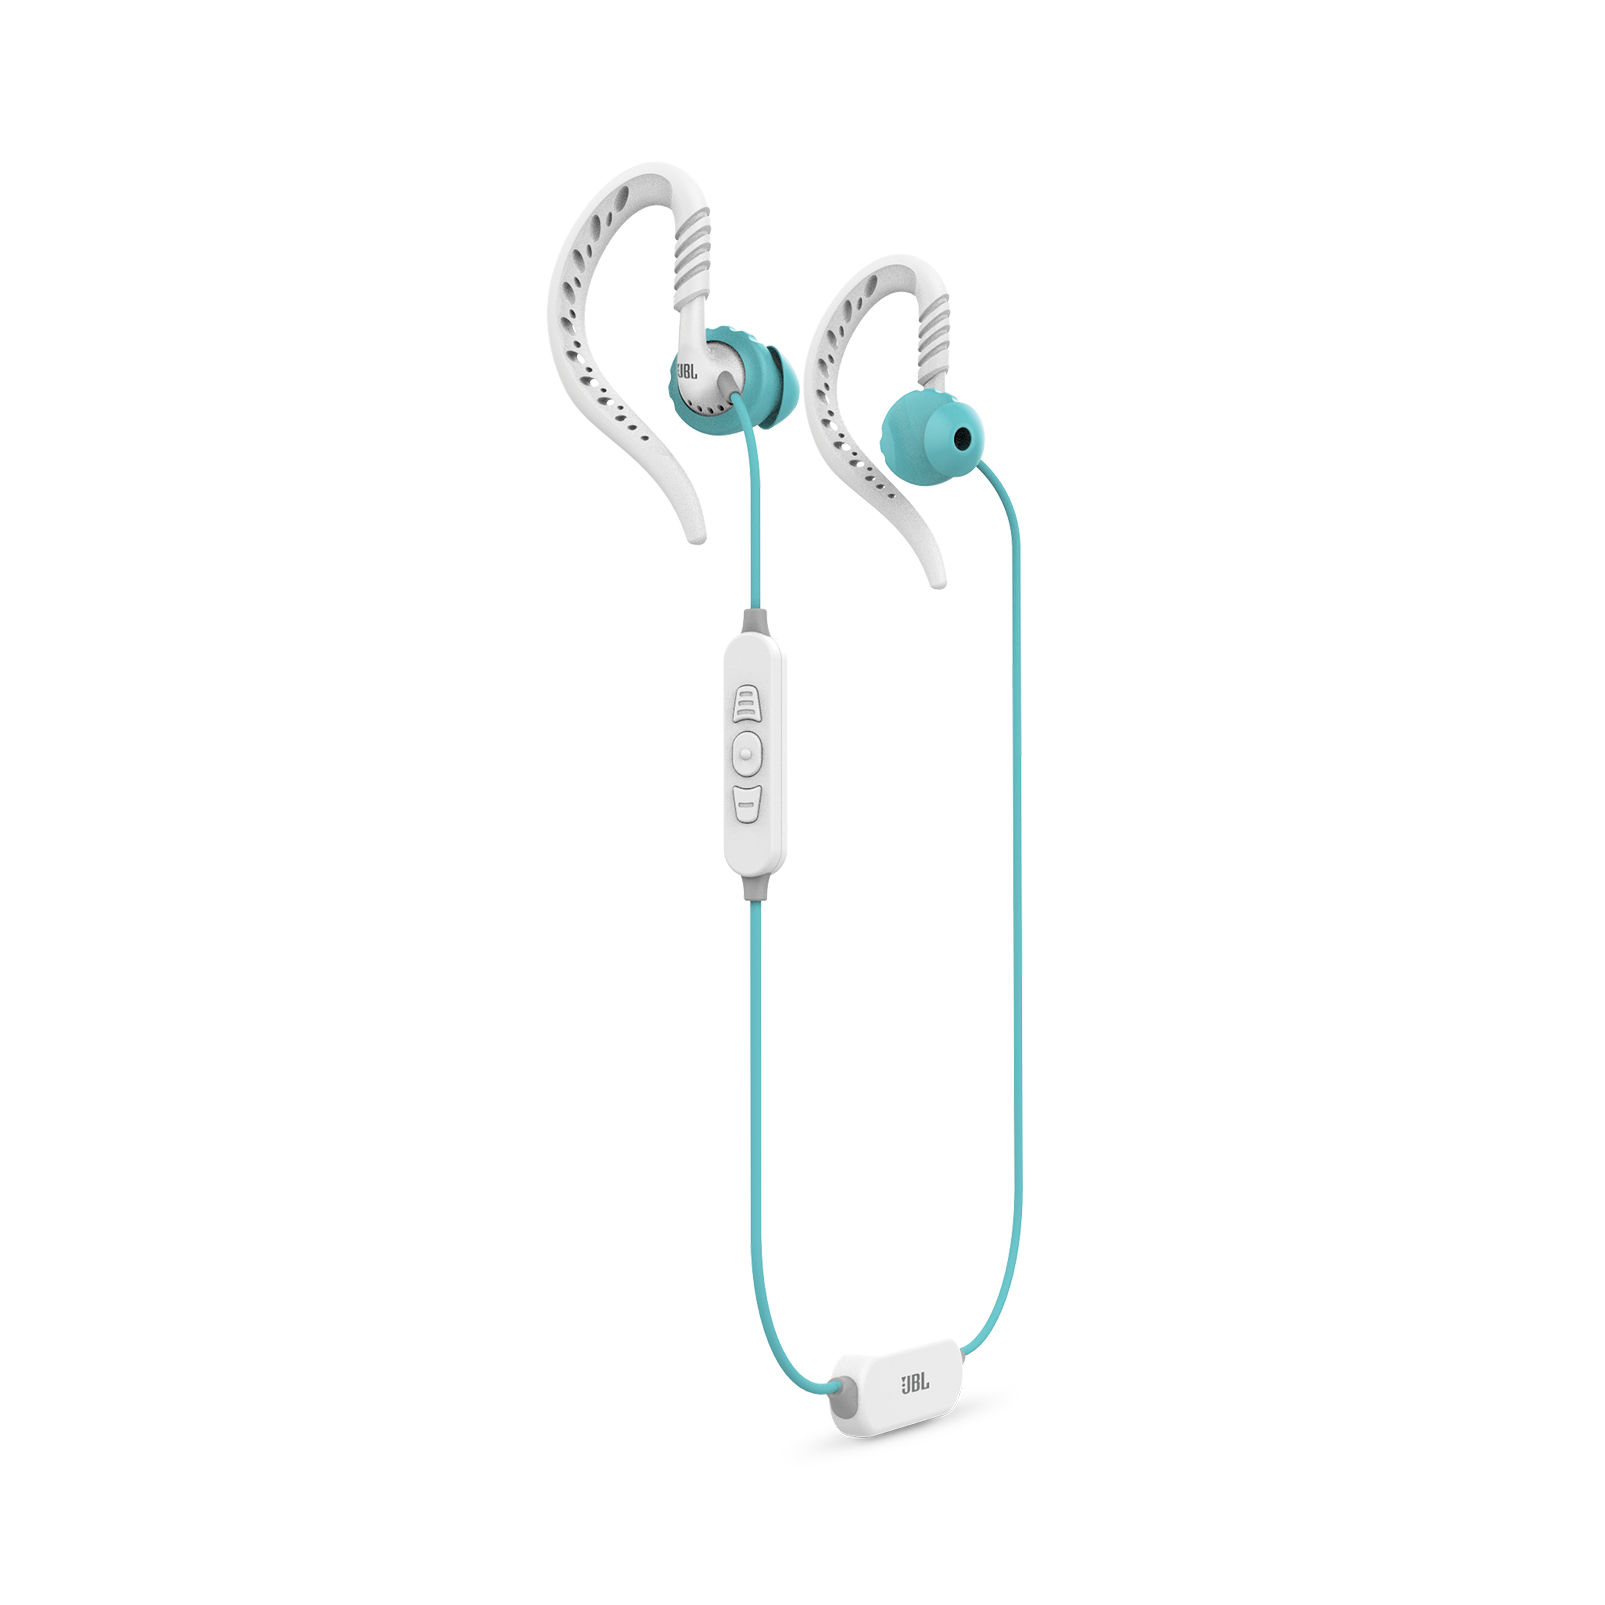 JBL Focus 700 for Women